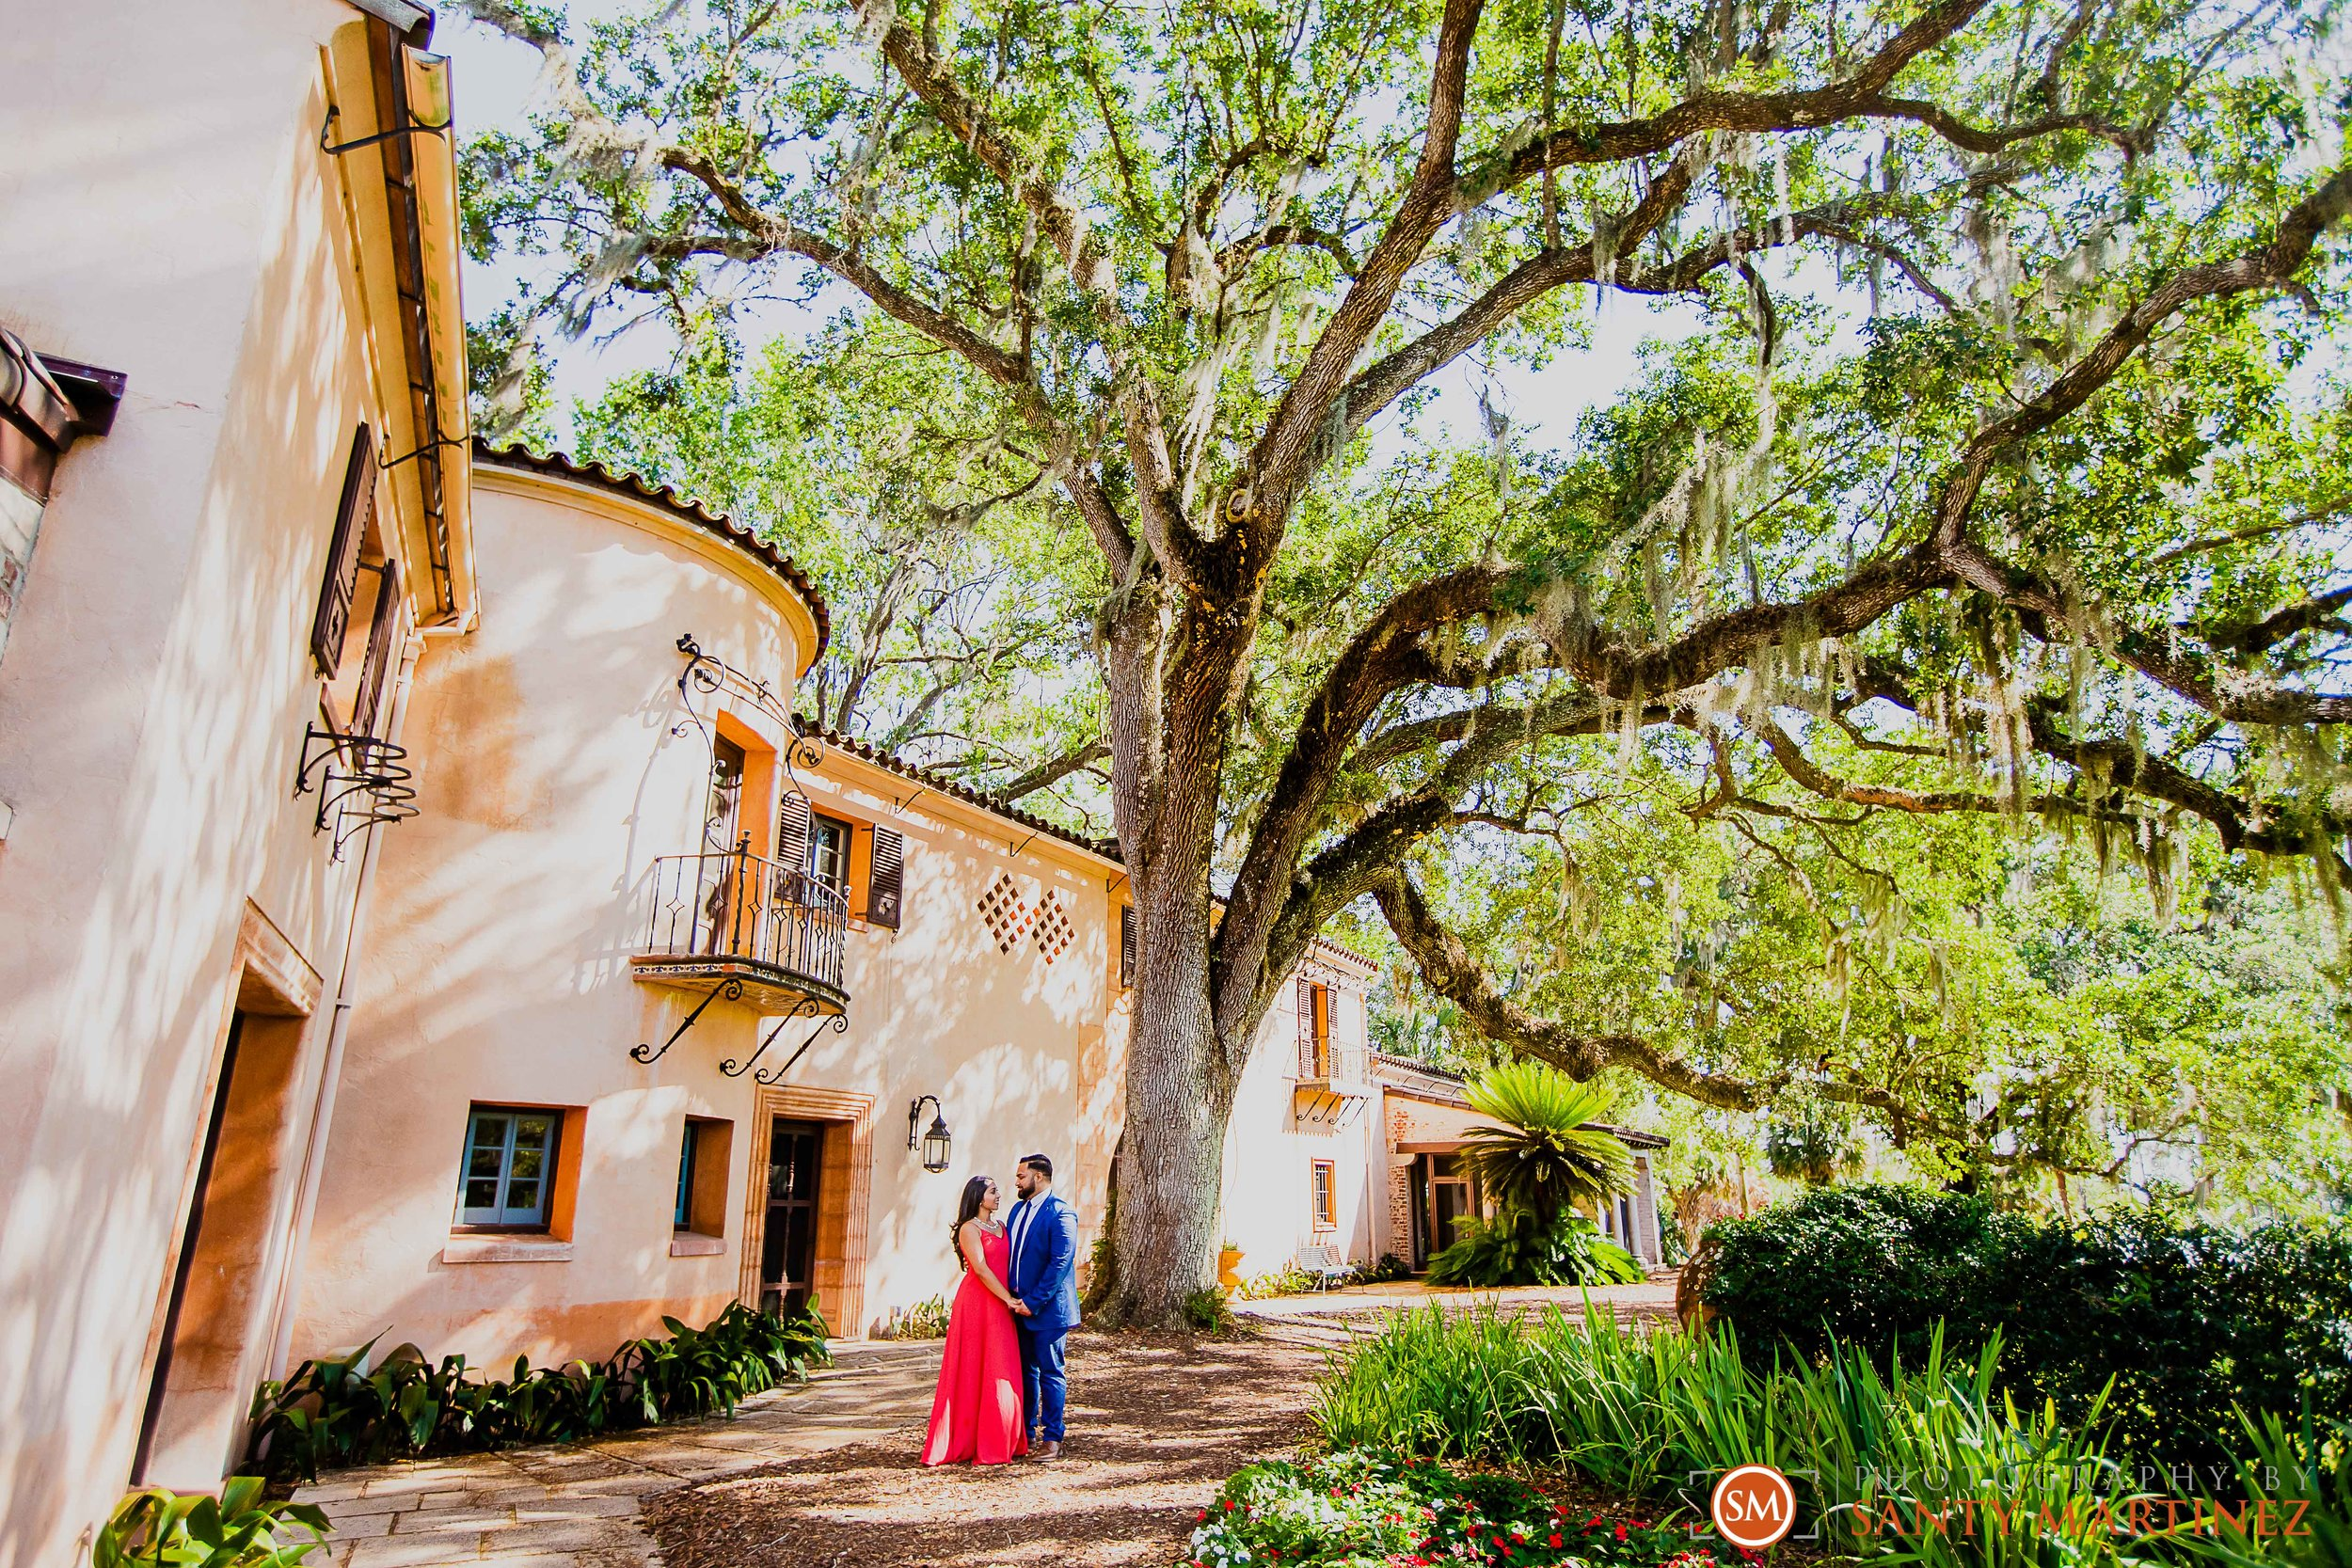 Engagement Session Bok Tower Gardens - Santy Martinez Photography-11.jpg